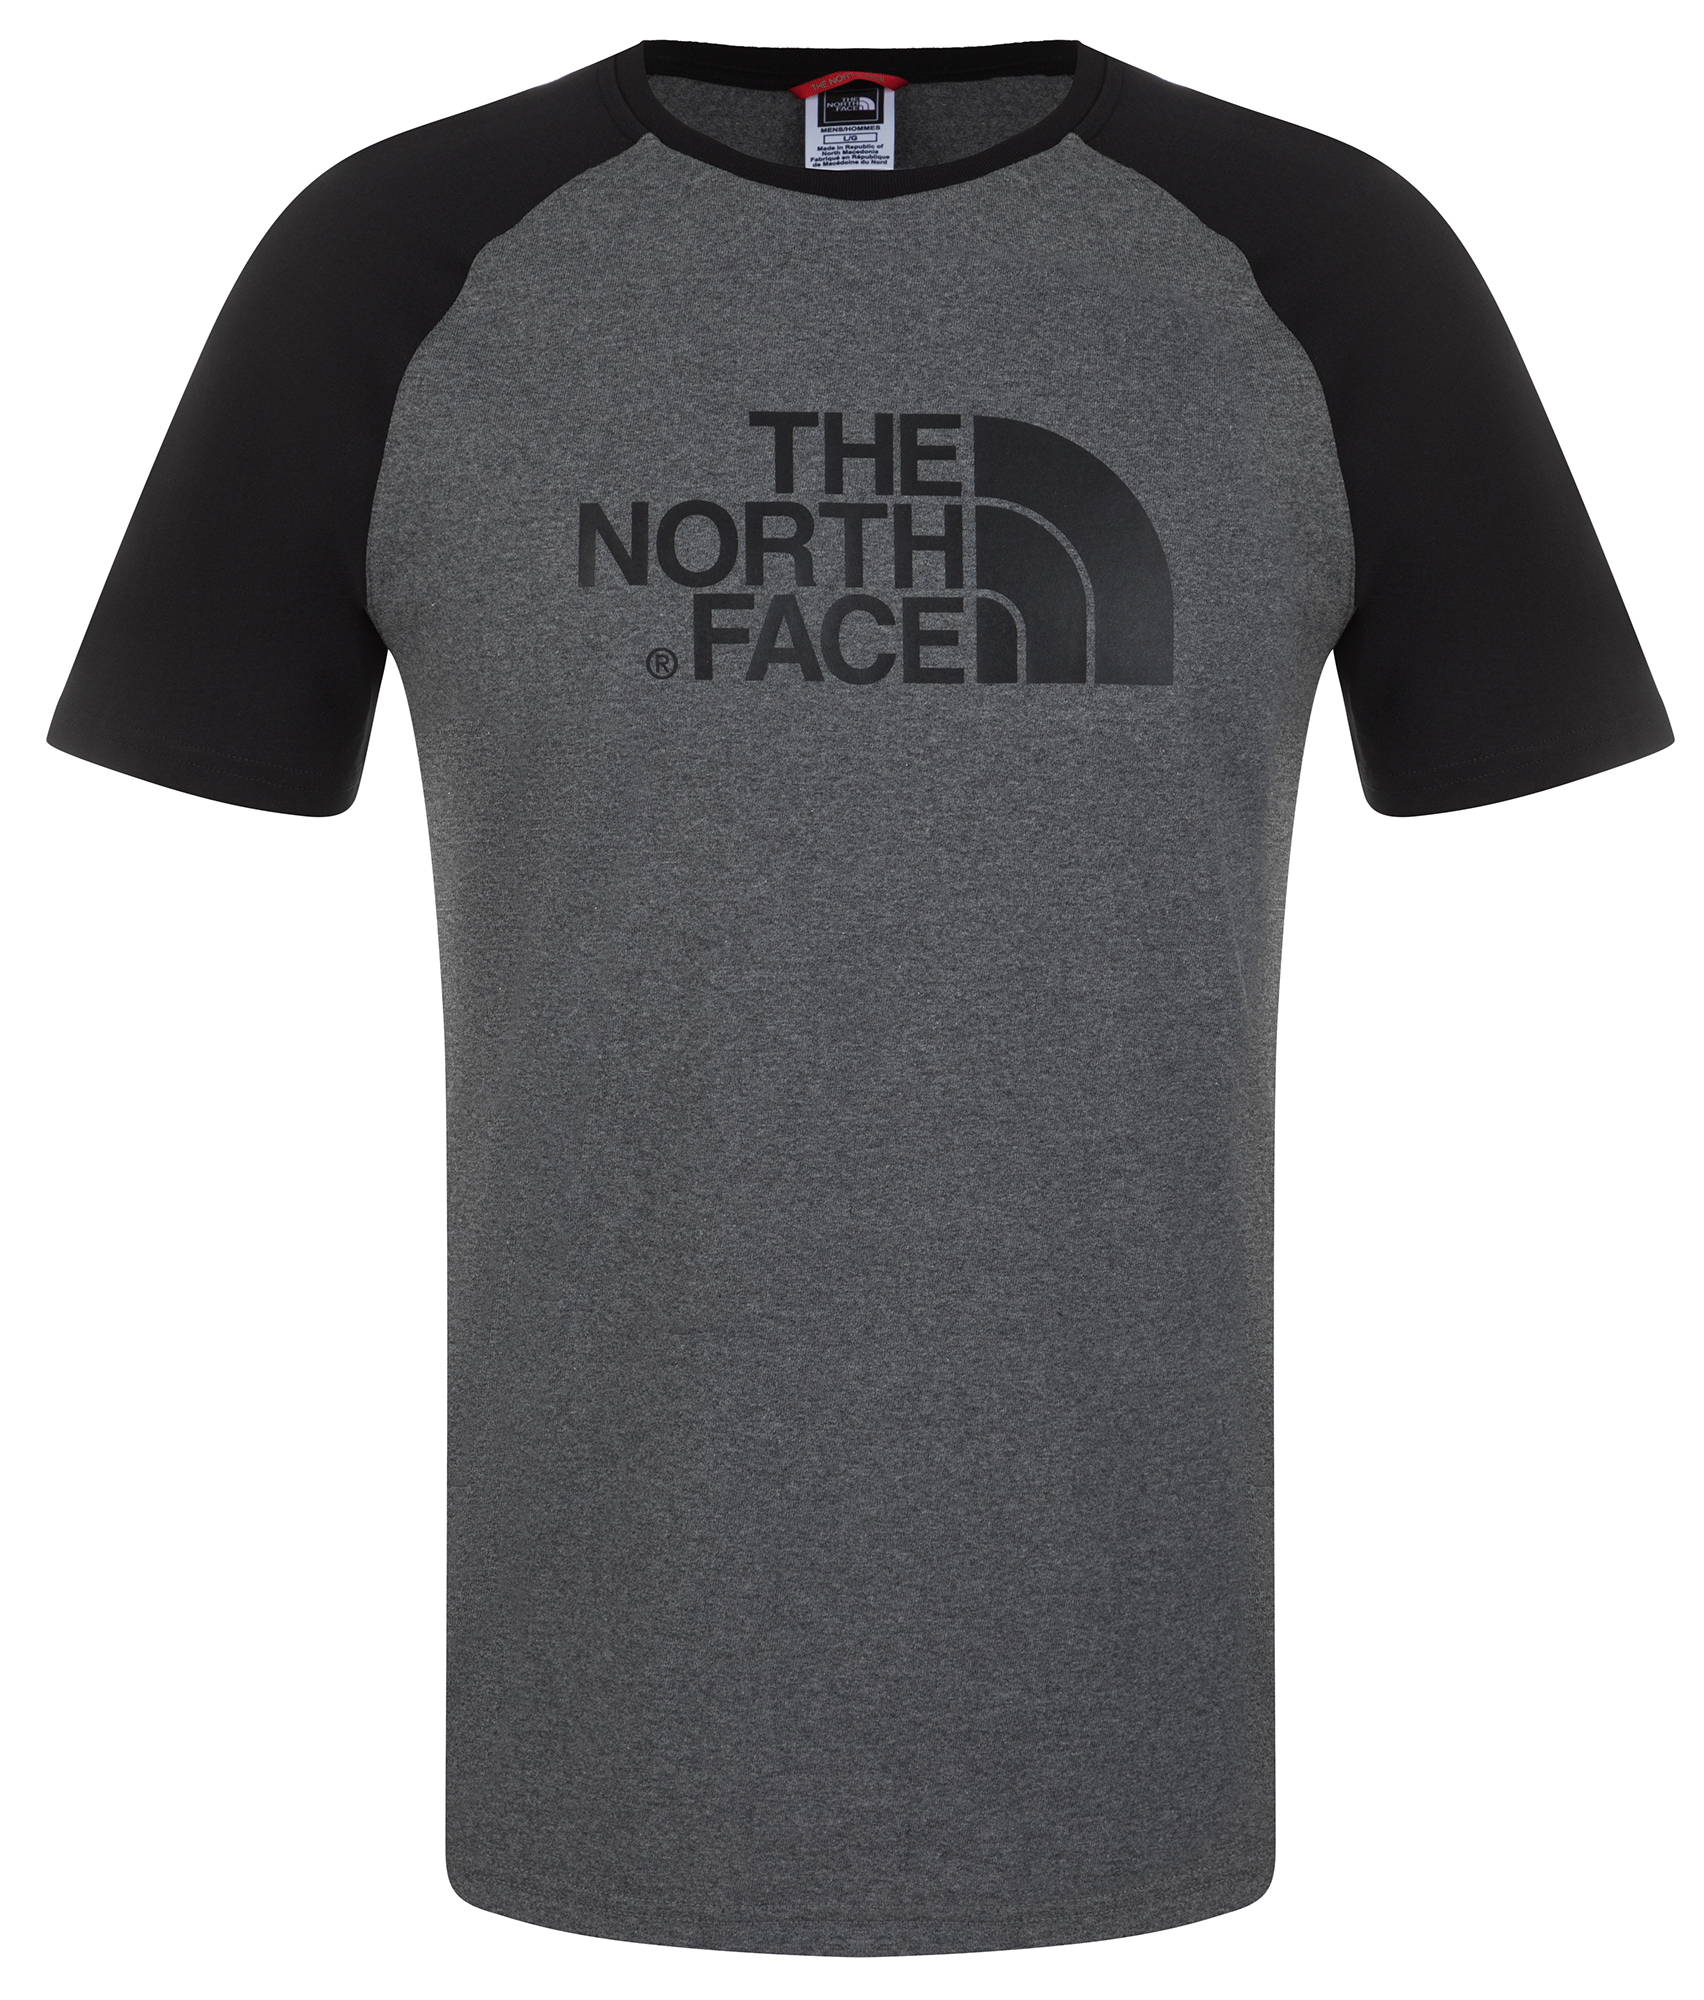 Фото - The North Face Футболка мужская The North Face Easy, размер 46-48 the north face футболка женская the north face easy размер 44